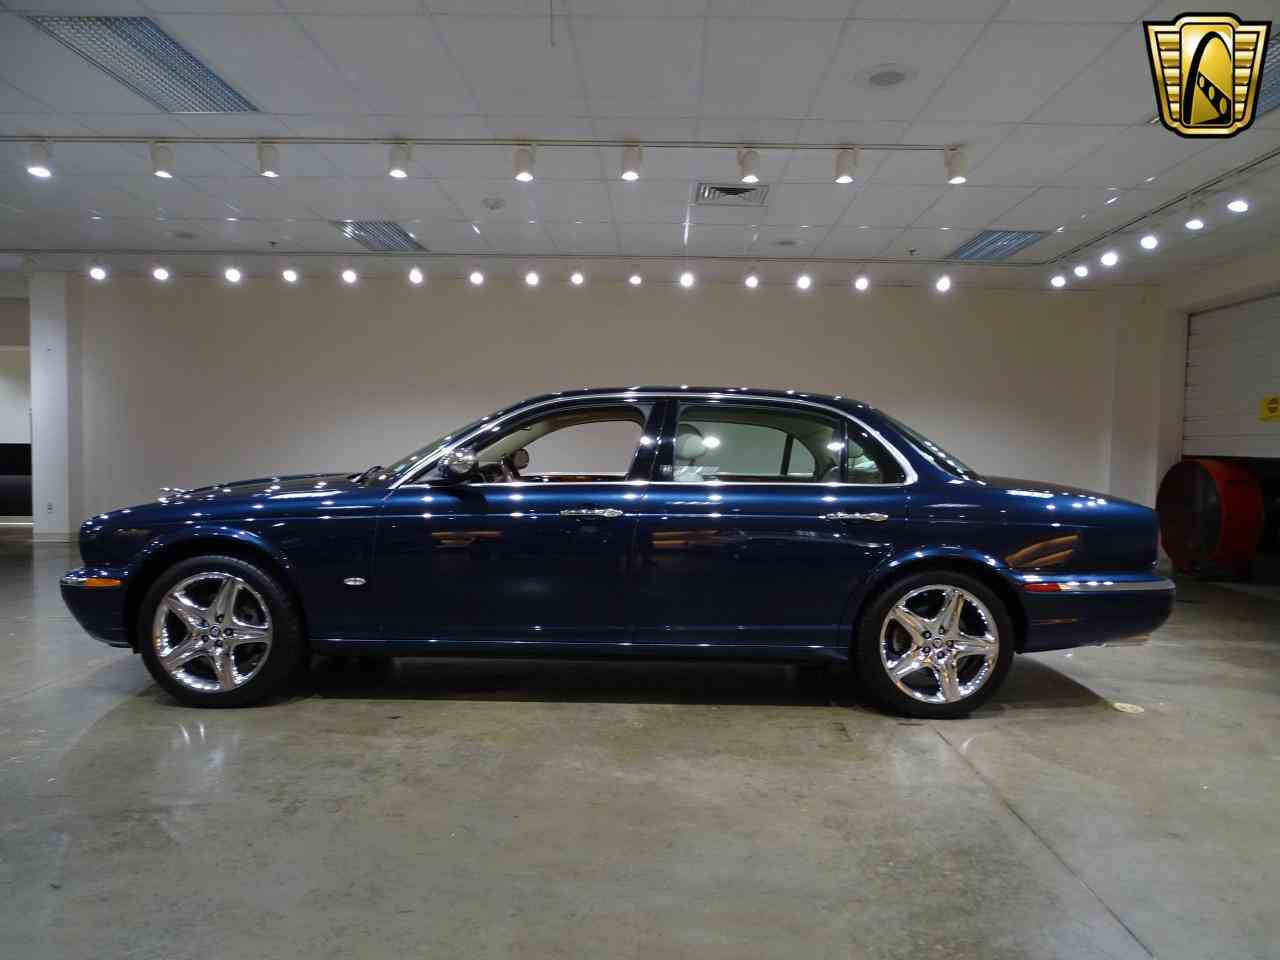 Large Picture of '06 Jaguar XJ8 located in Illinois Offered by Gateway Classic Cars - St. Louis - MFNT